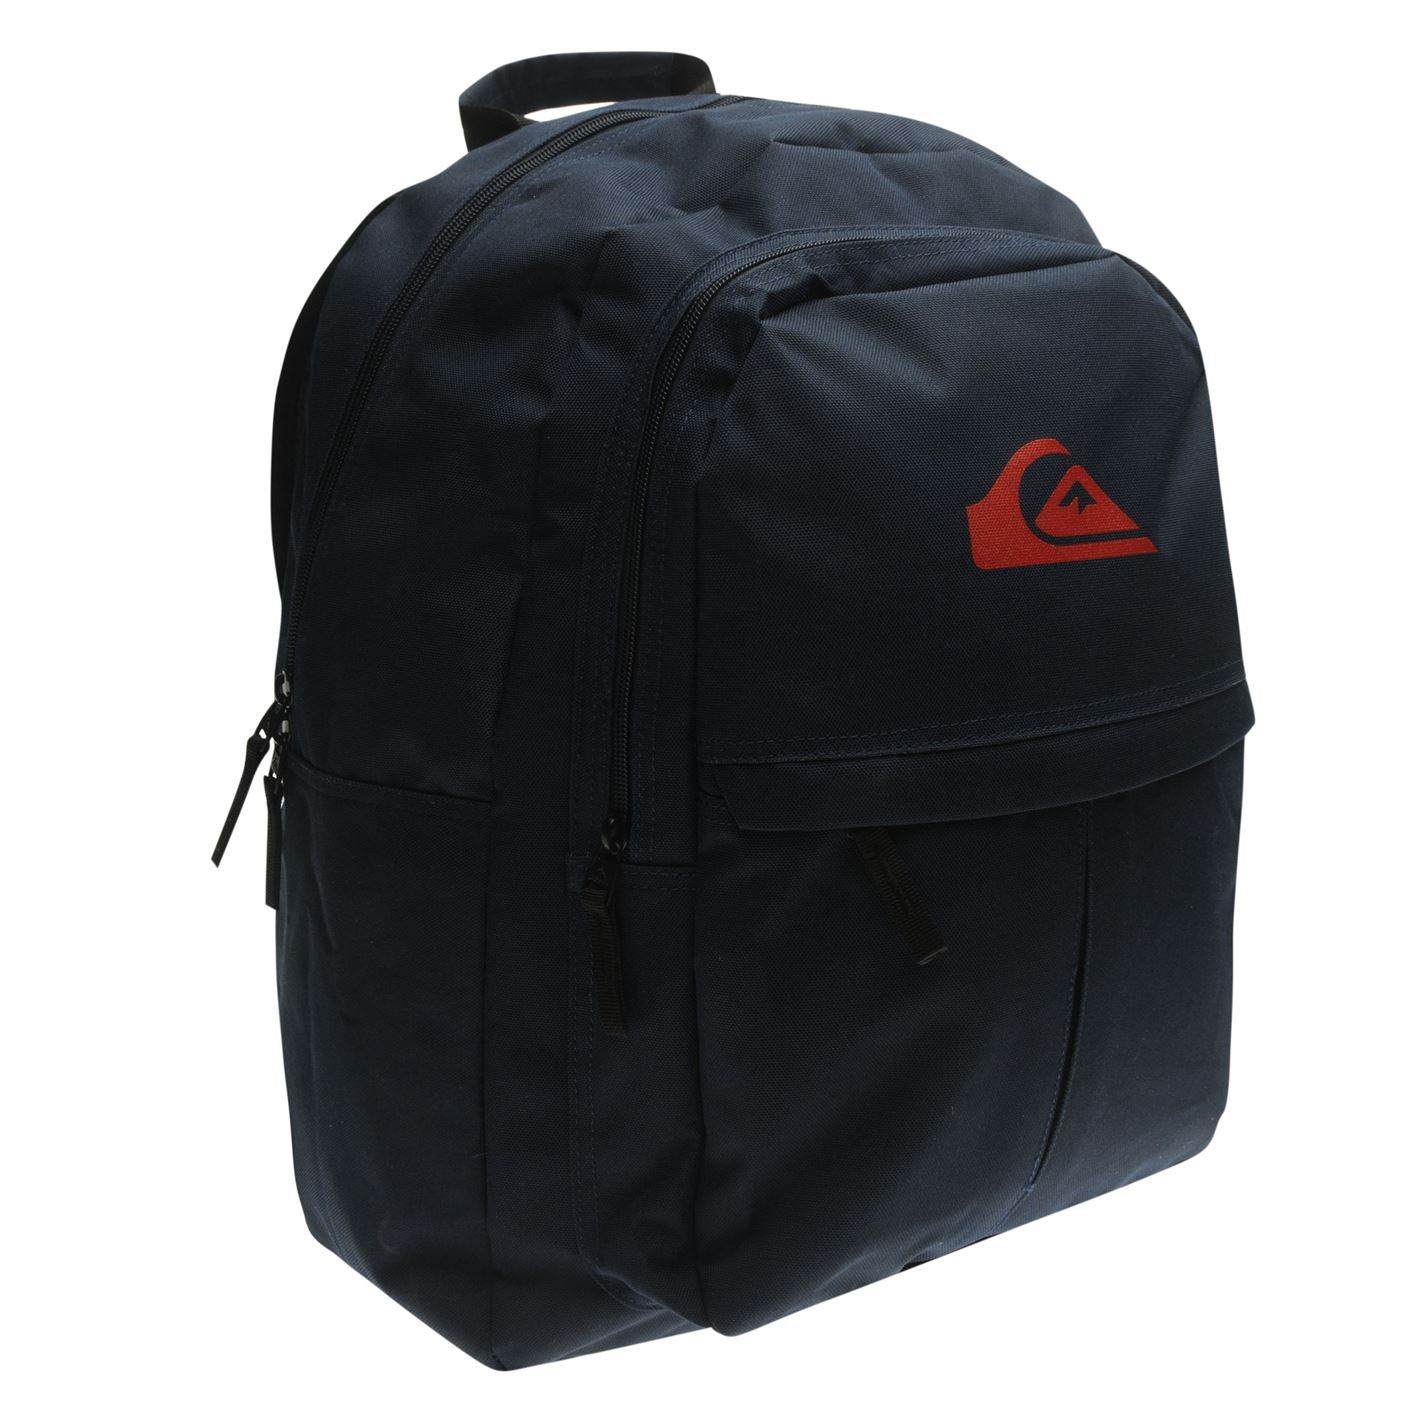 810fa329ea65 Quiksilver Plain Backpack Navy Rucksack Sports Bag Gymbag Kitbag